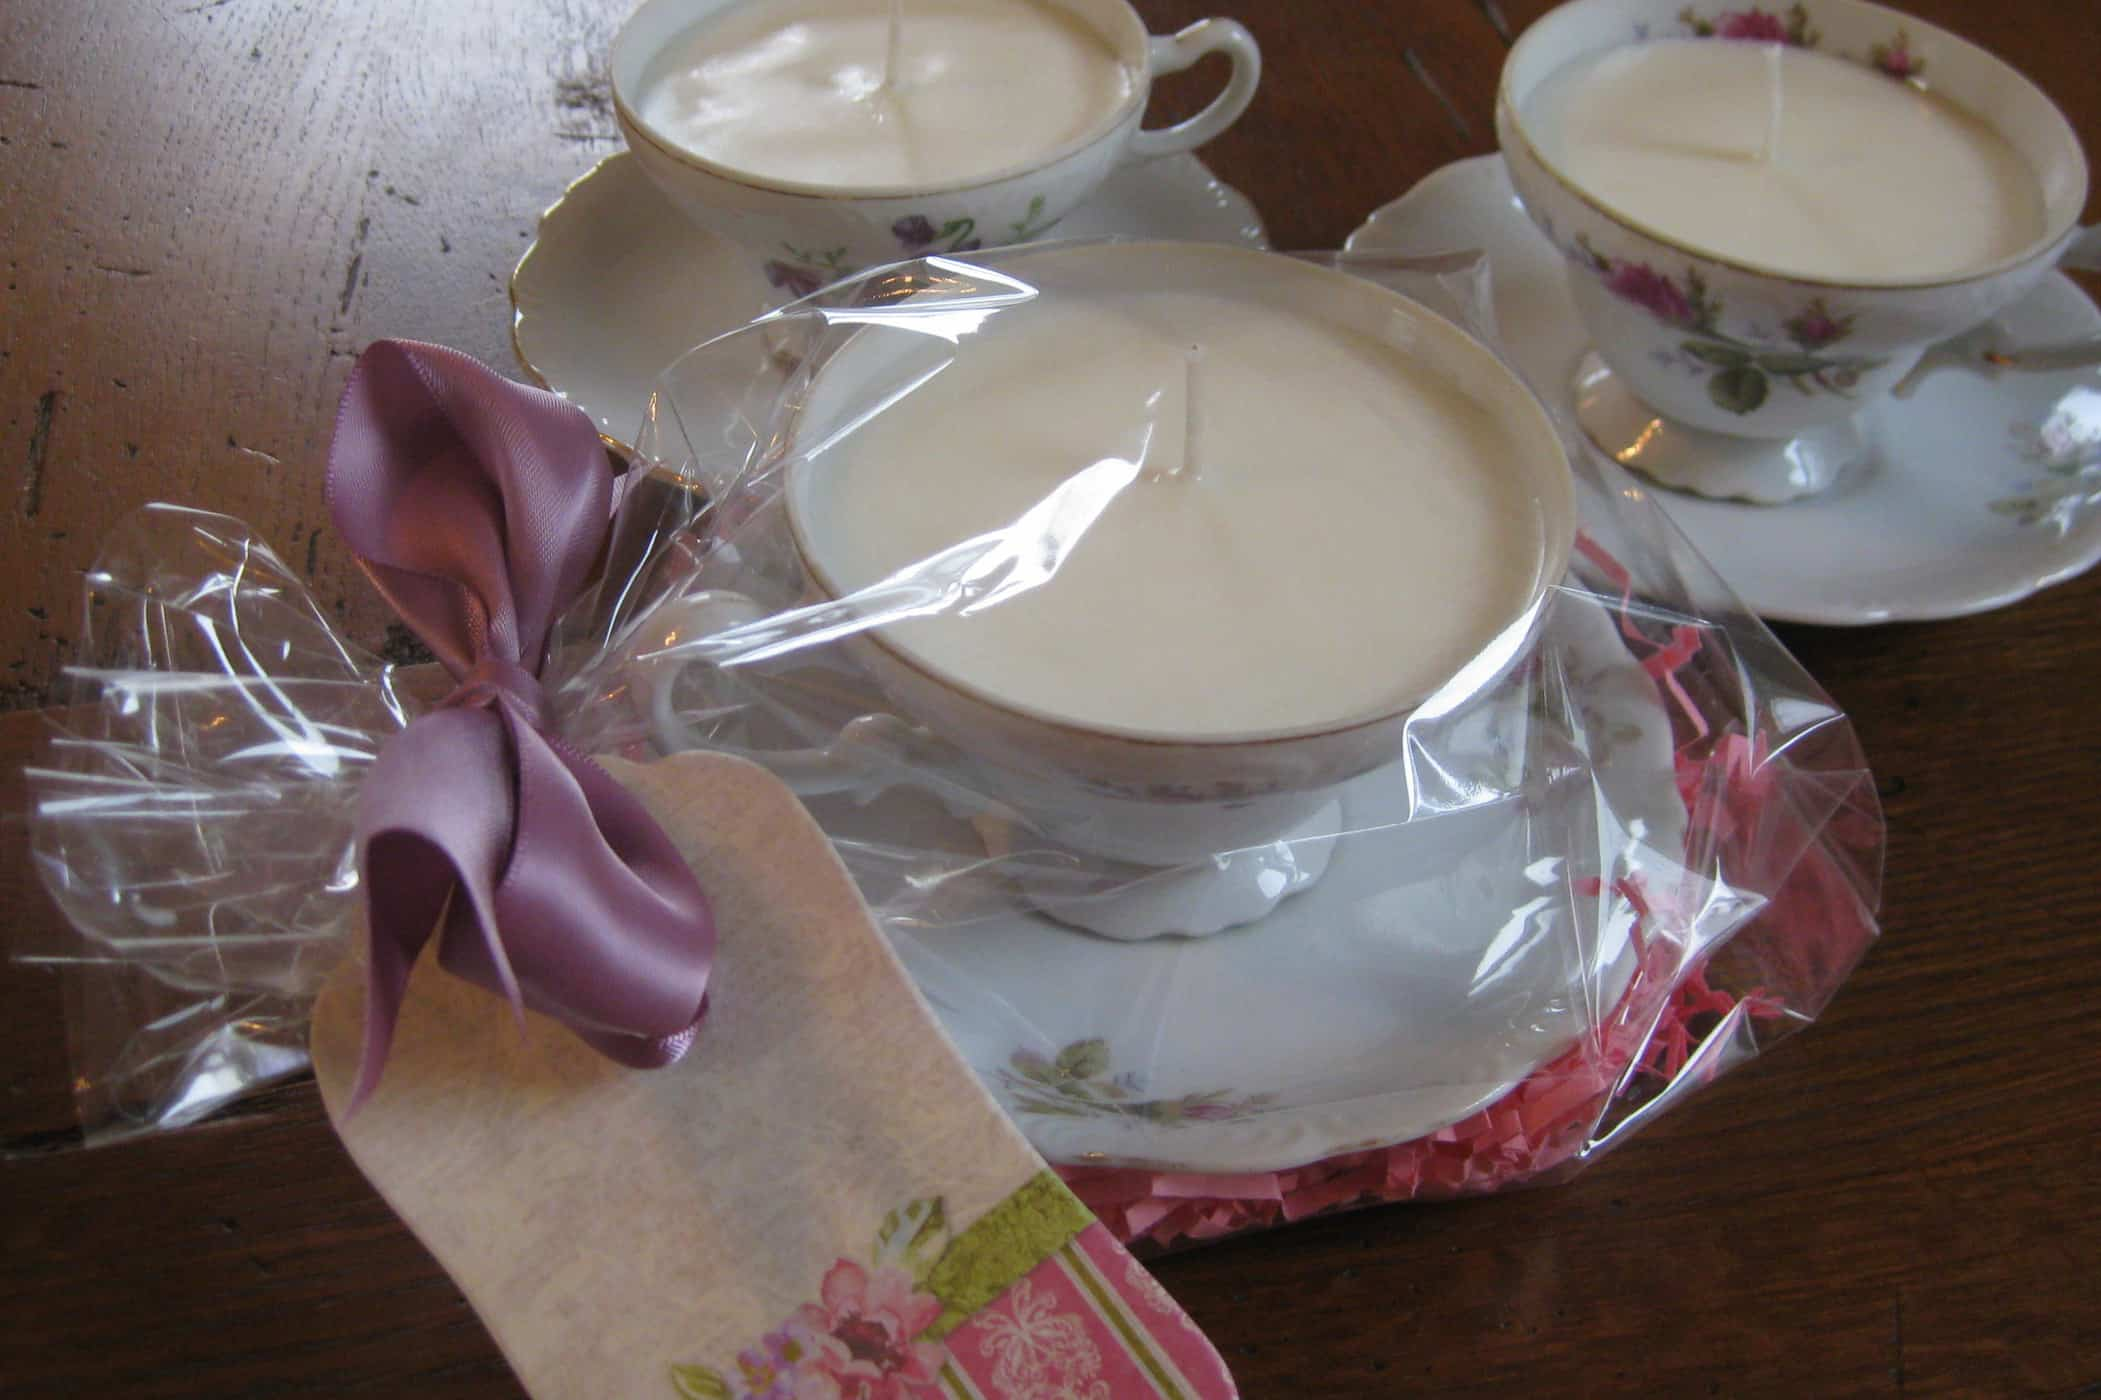 I Made Teacup Candles Yesterday…